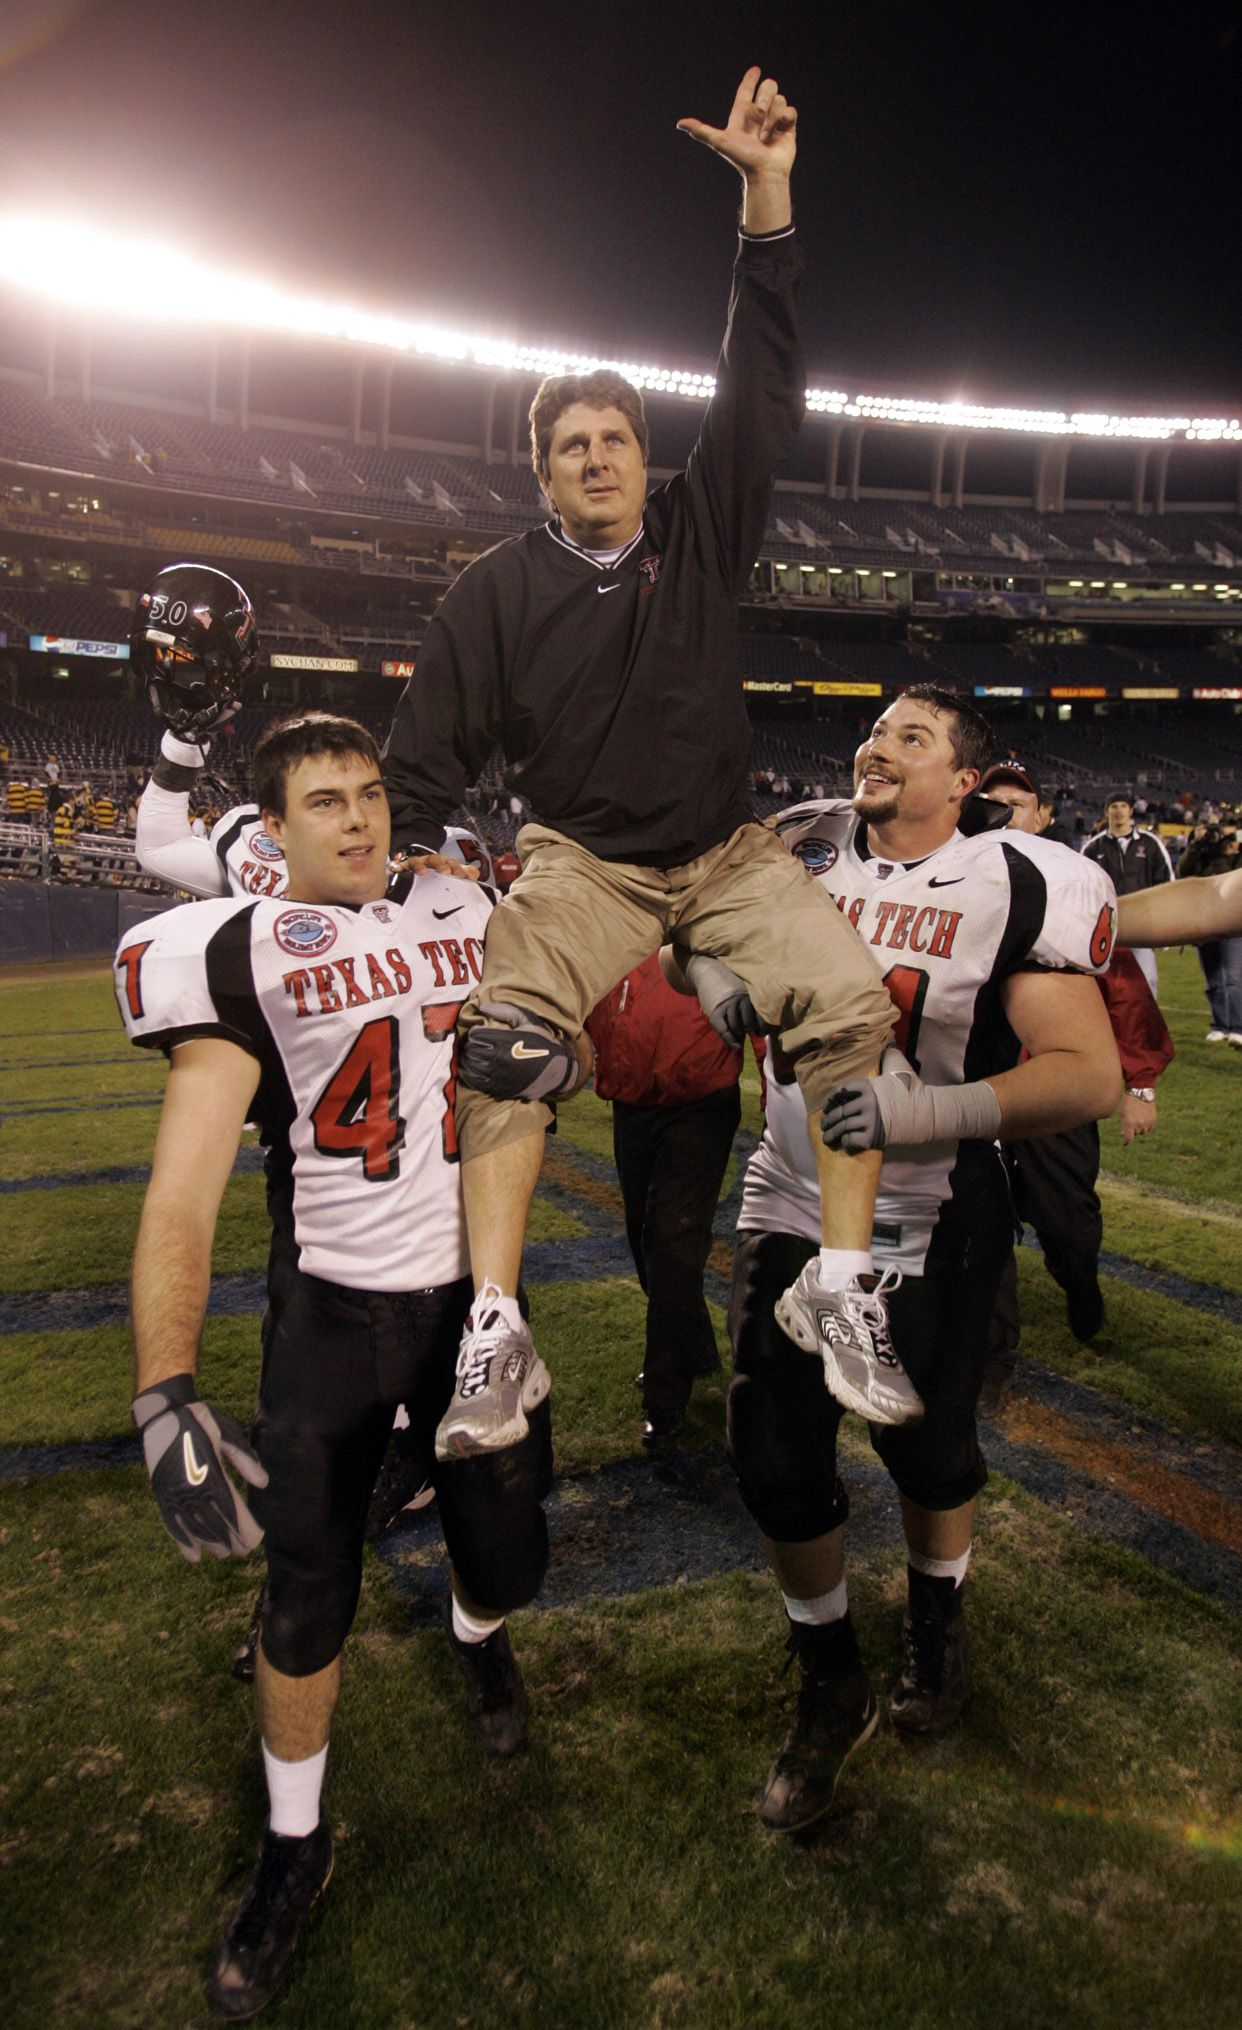 Texas Tech head coach Mike Leach is carried by Clay McGuire and Cody Campbell (right) after their victory against the University of California in the 2004 Holiday Bowl at San Diego's Qualcomm Stadium.